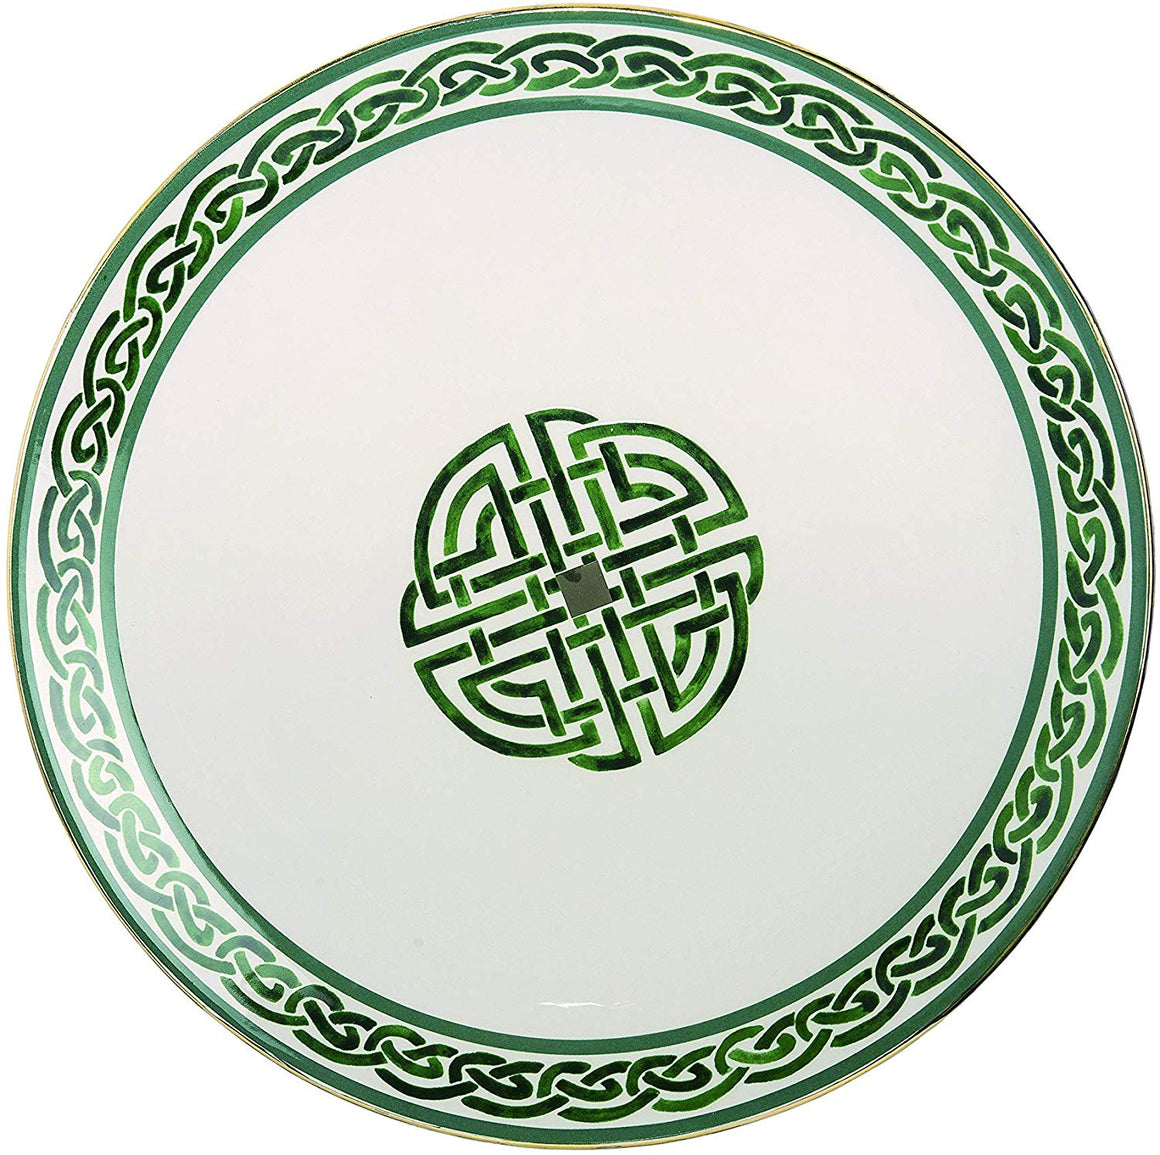 St Patrick's Day Celtic Knot Ceramic Platter, 12 Inch Serving Plate with Green and Gold, Irish Plate